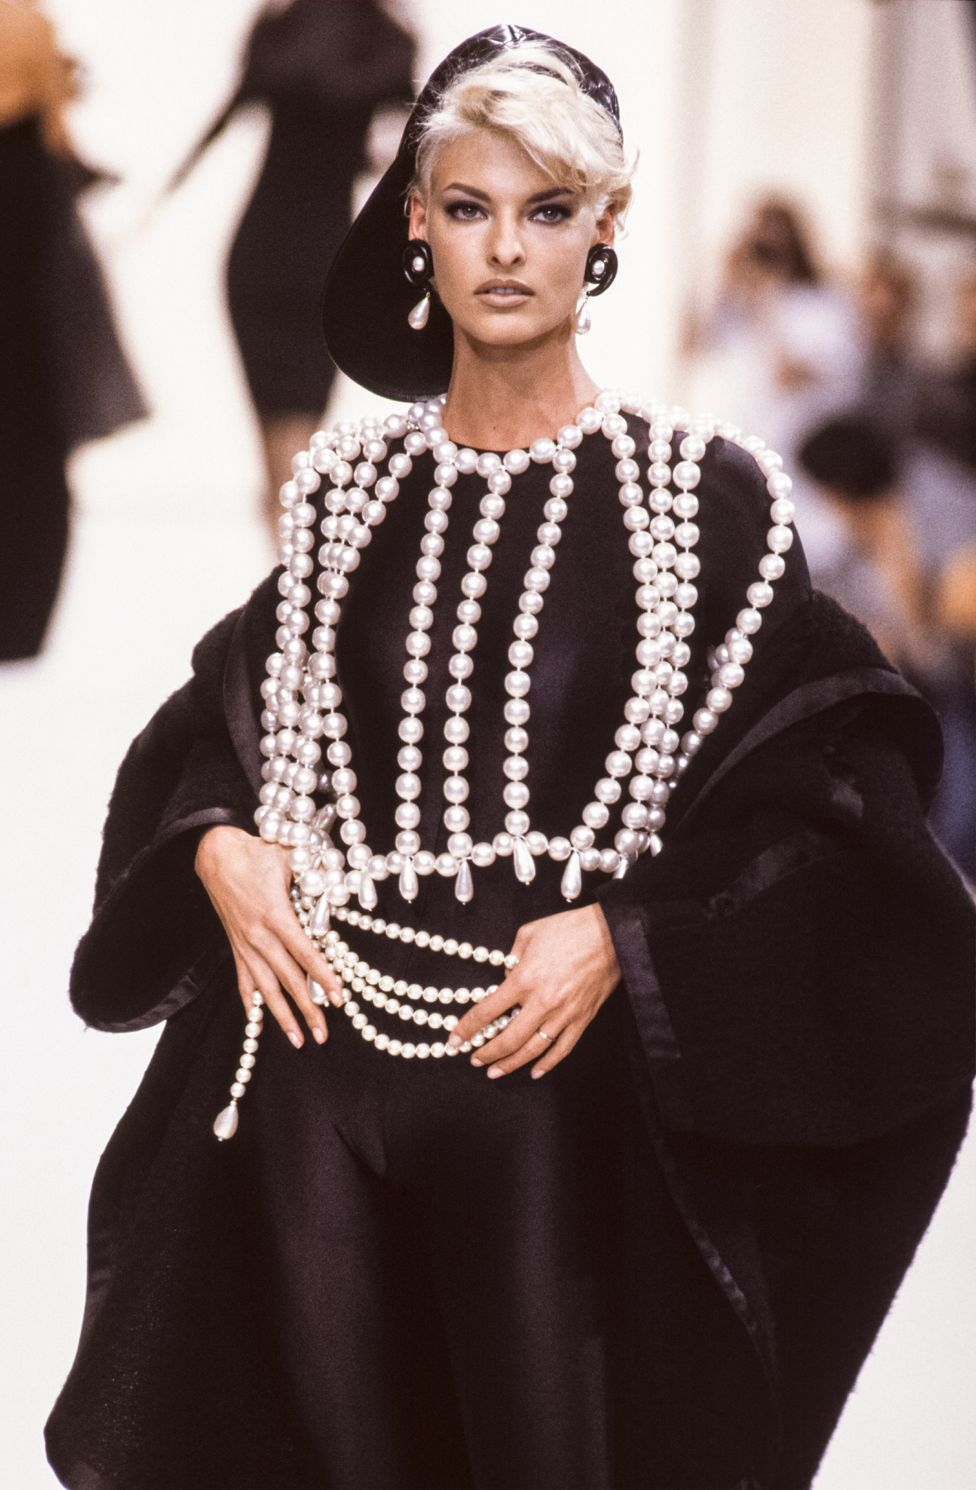 Linda Evangelista walks the runway at the Chanel Ready to Wear Fall/Winter 1991-1992 fashion show during the Paris Fashion Week in March, 1991 in Paris, France.